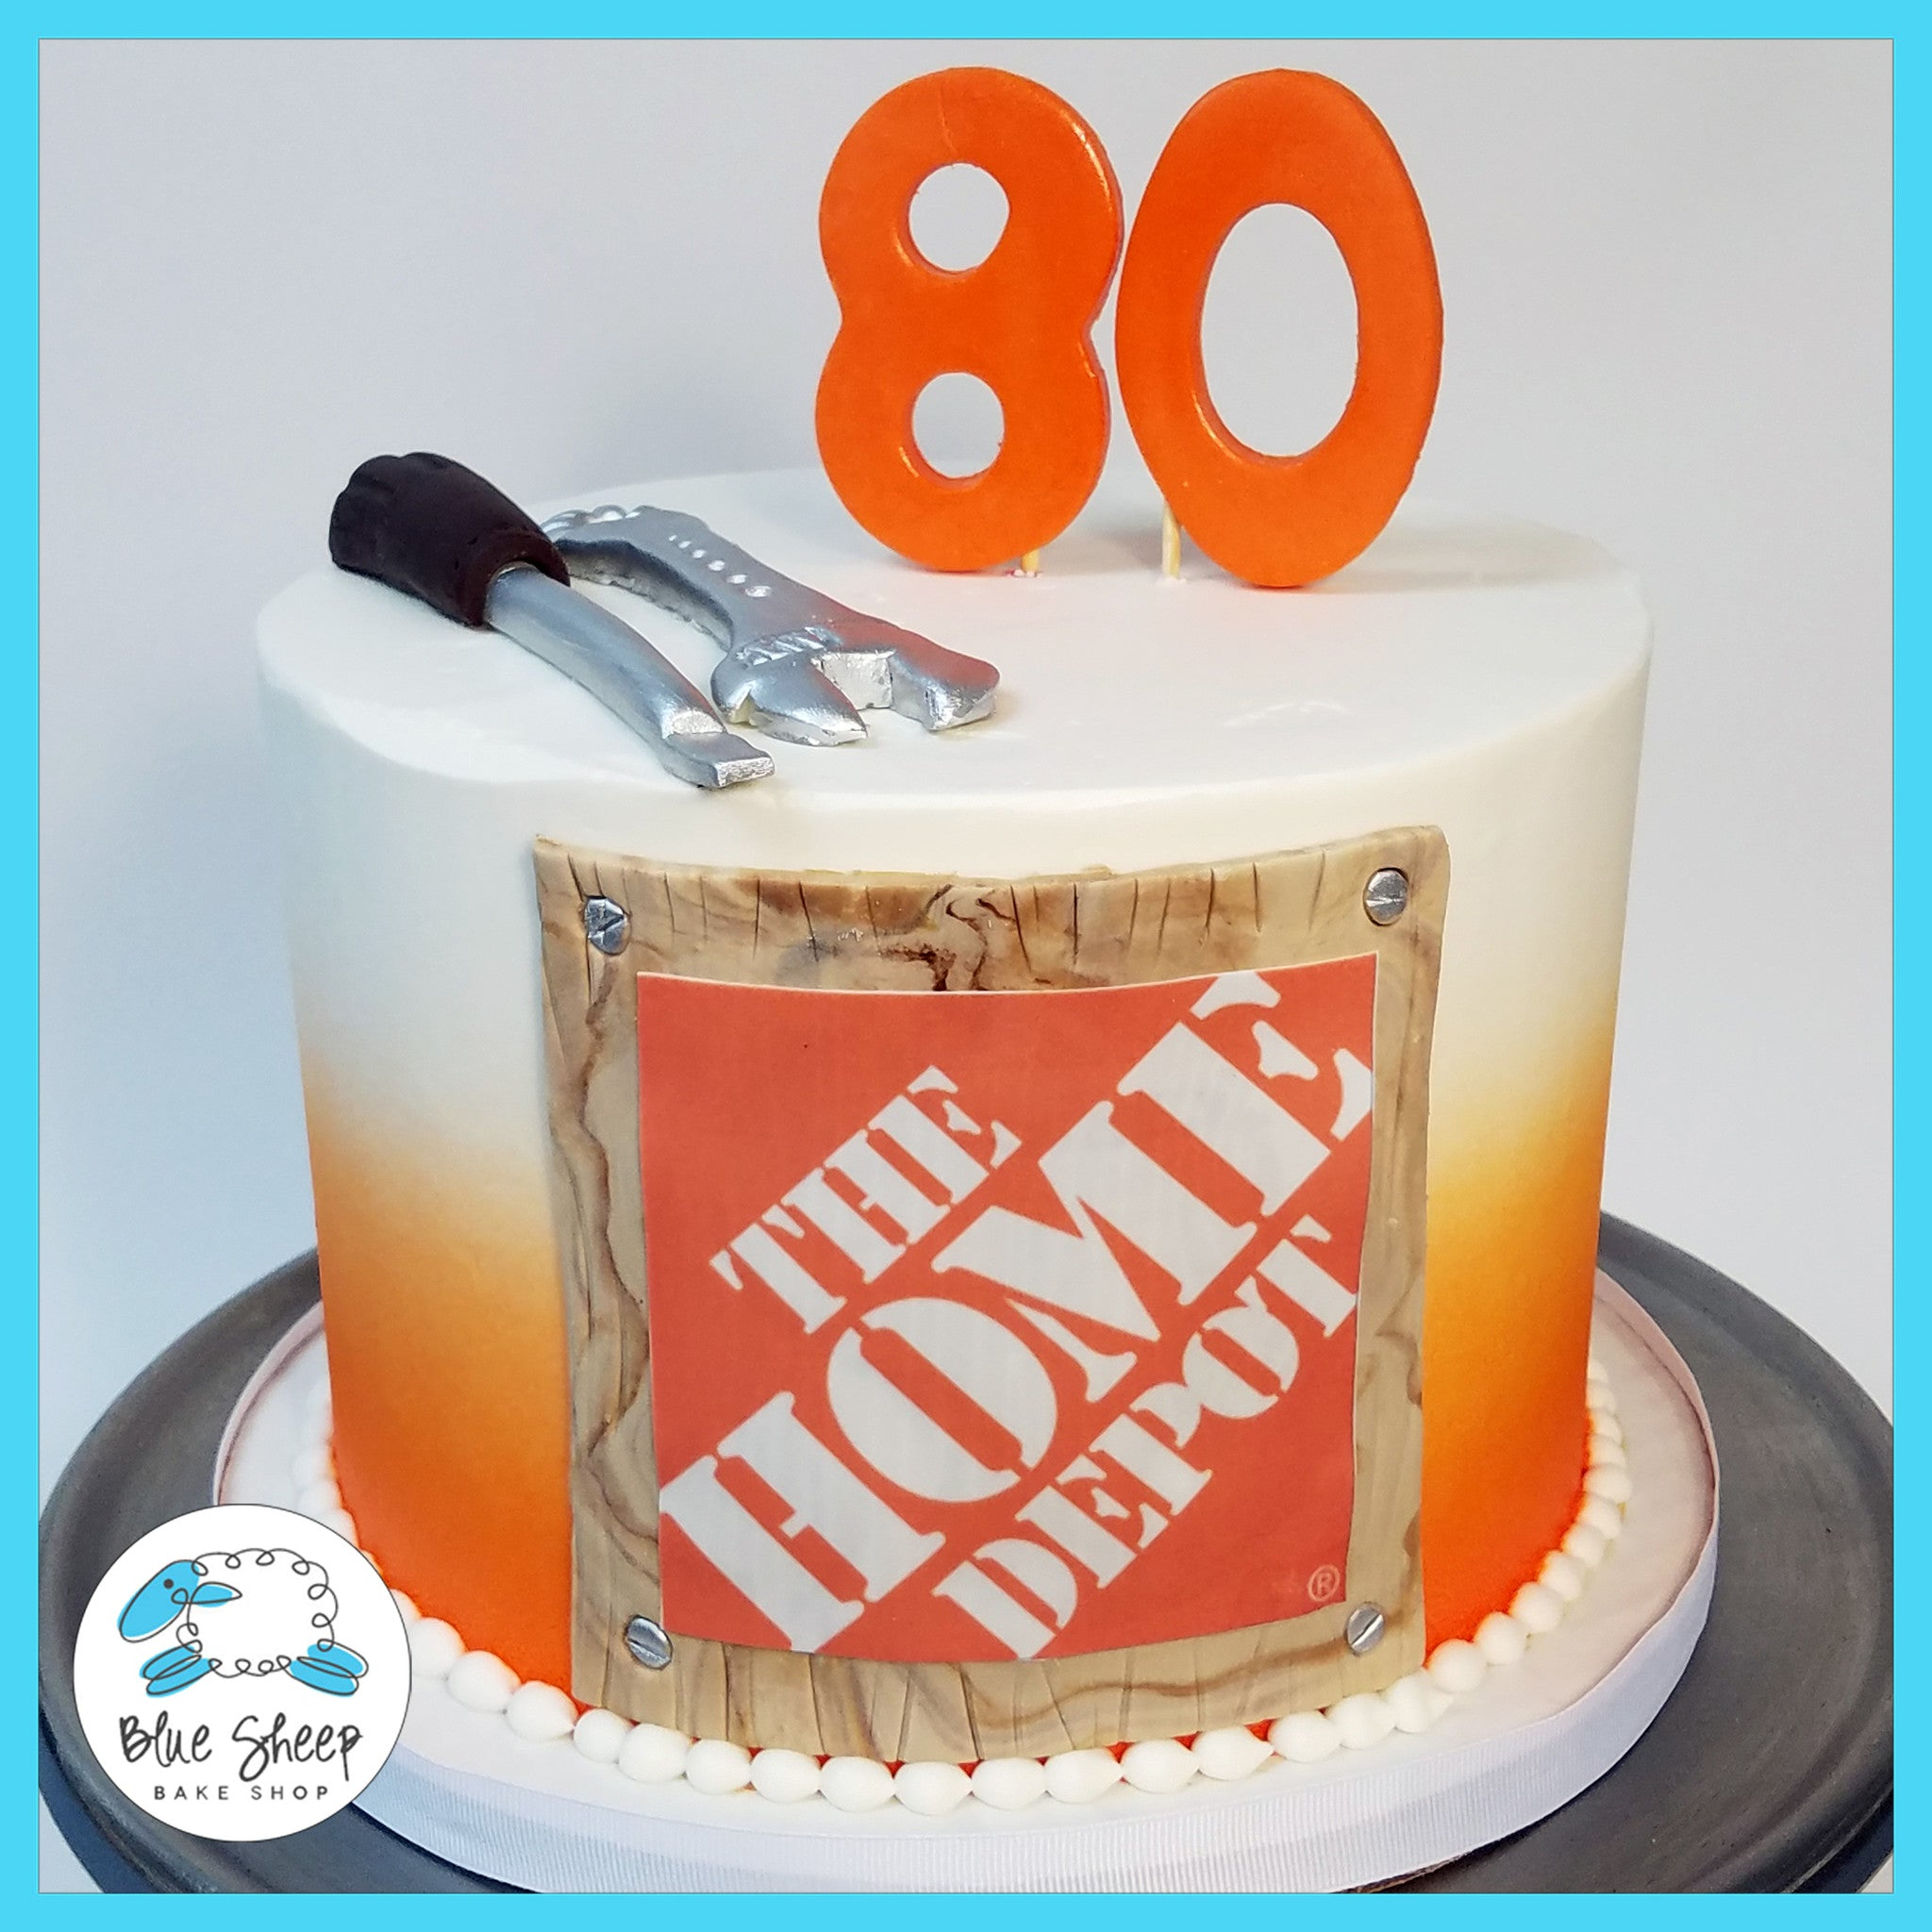 Home Depot Birthday Cake Blue Sheep Bake Shop